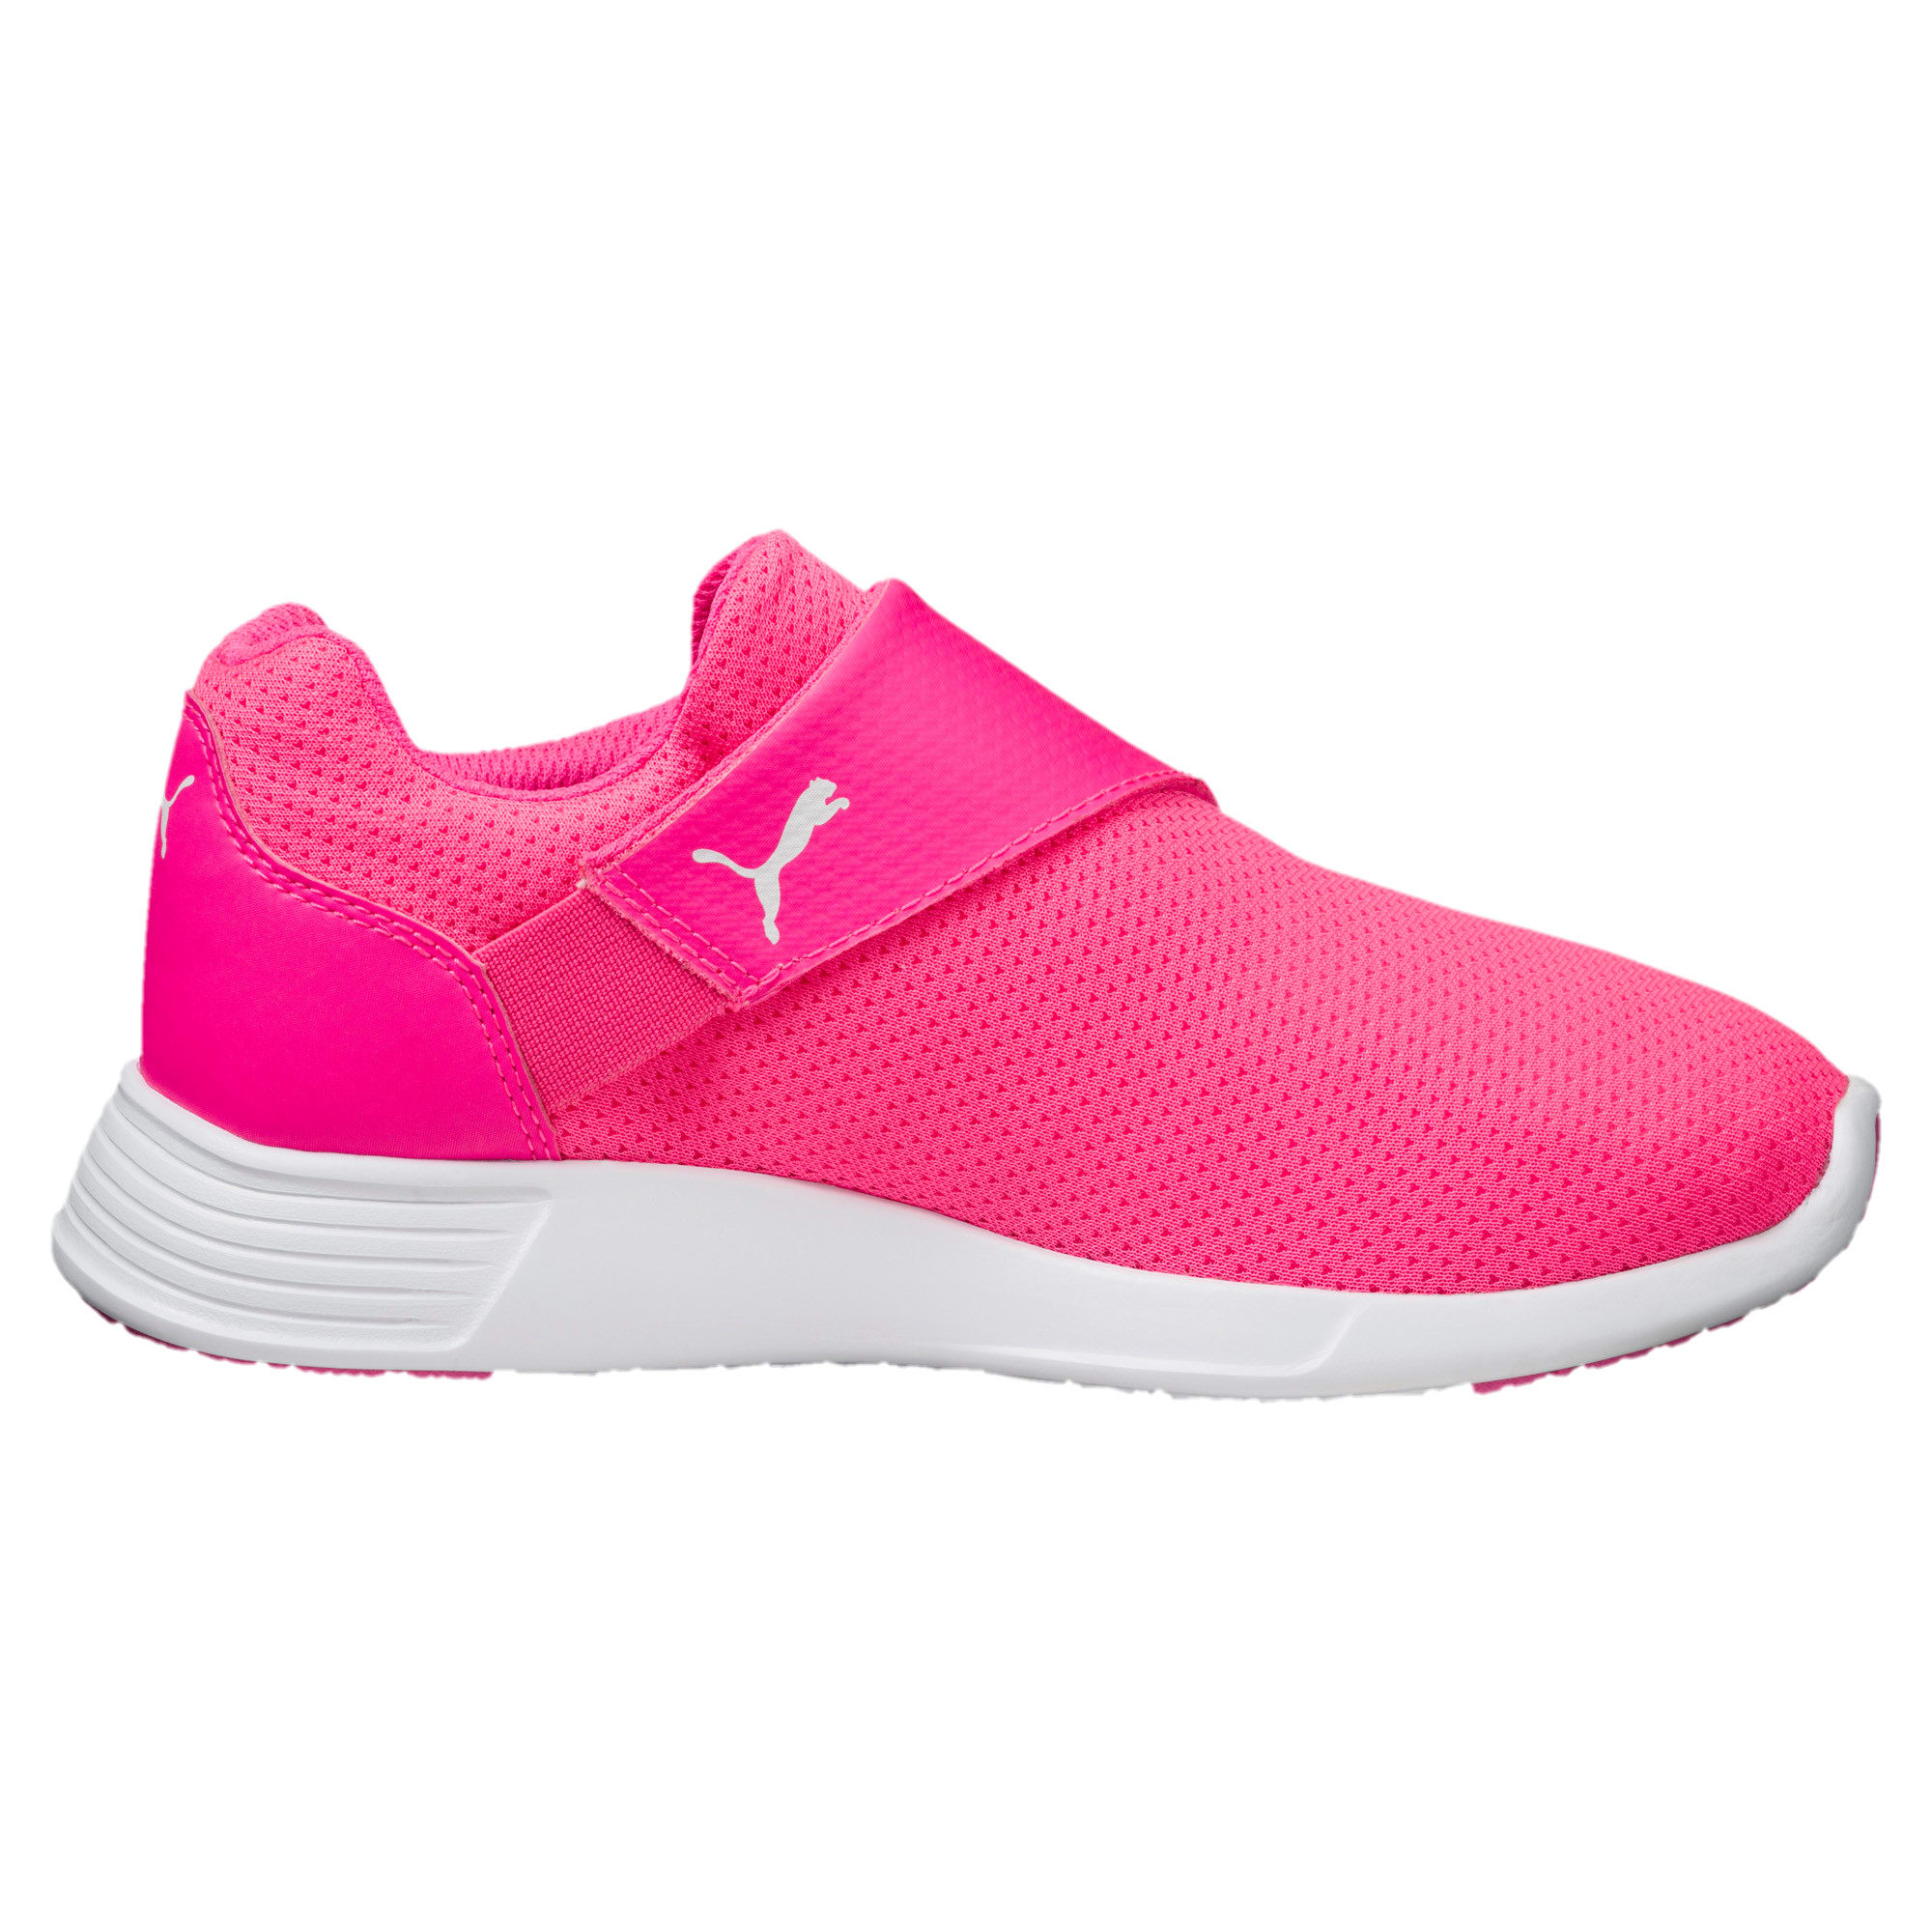 Thumbnail 4 of ST Trainer Evo AC Kids' Trainers, KNOCKOUT PINK-Puma White, medium-IND